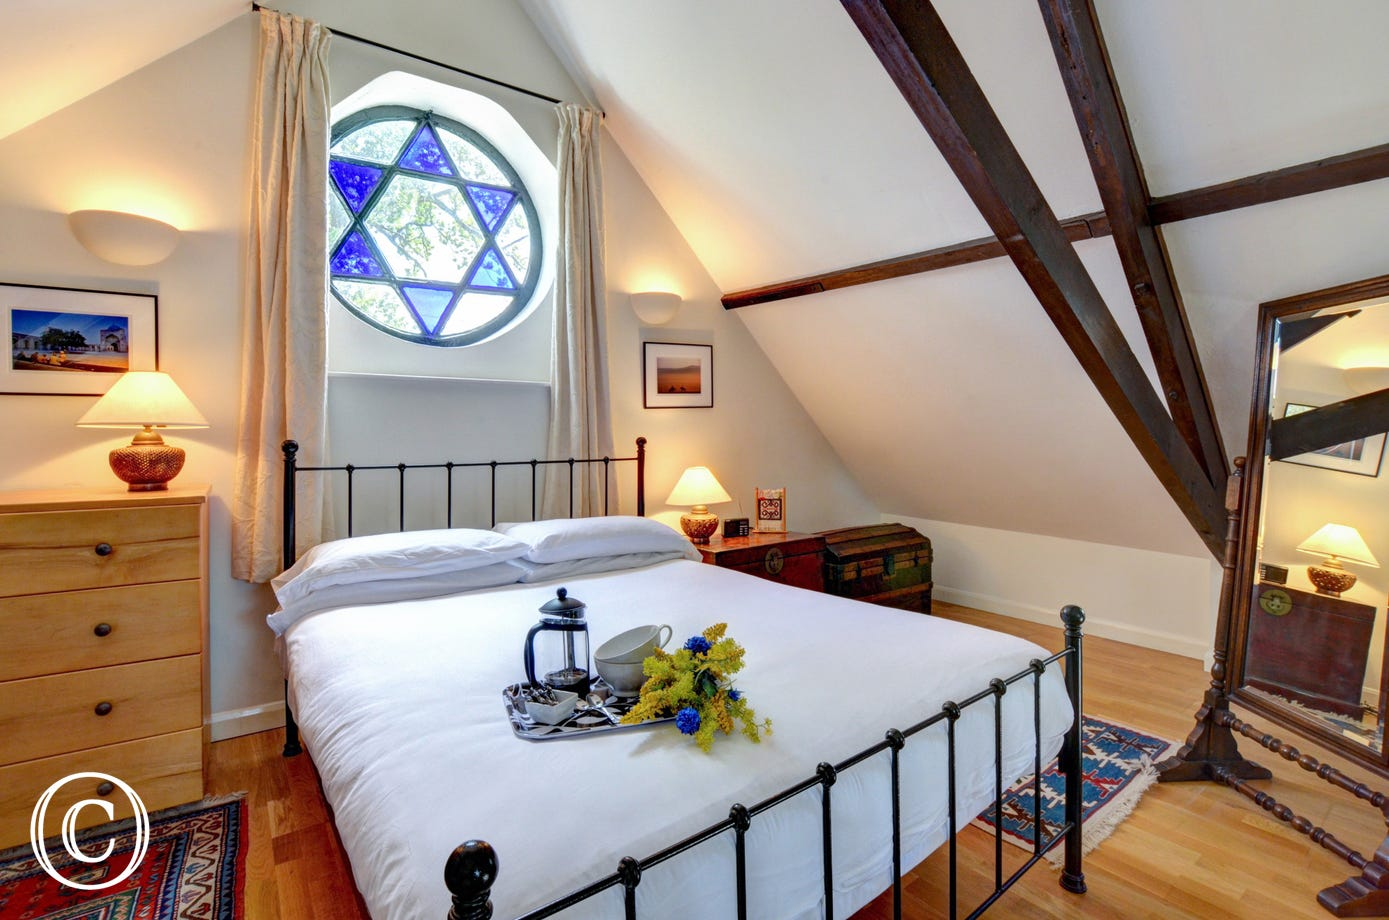 Double Bedroom with ornate window